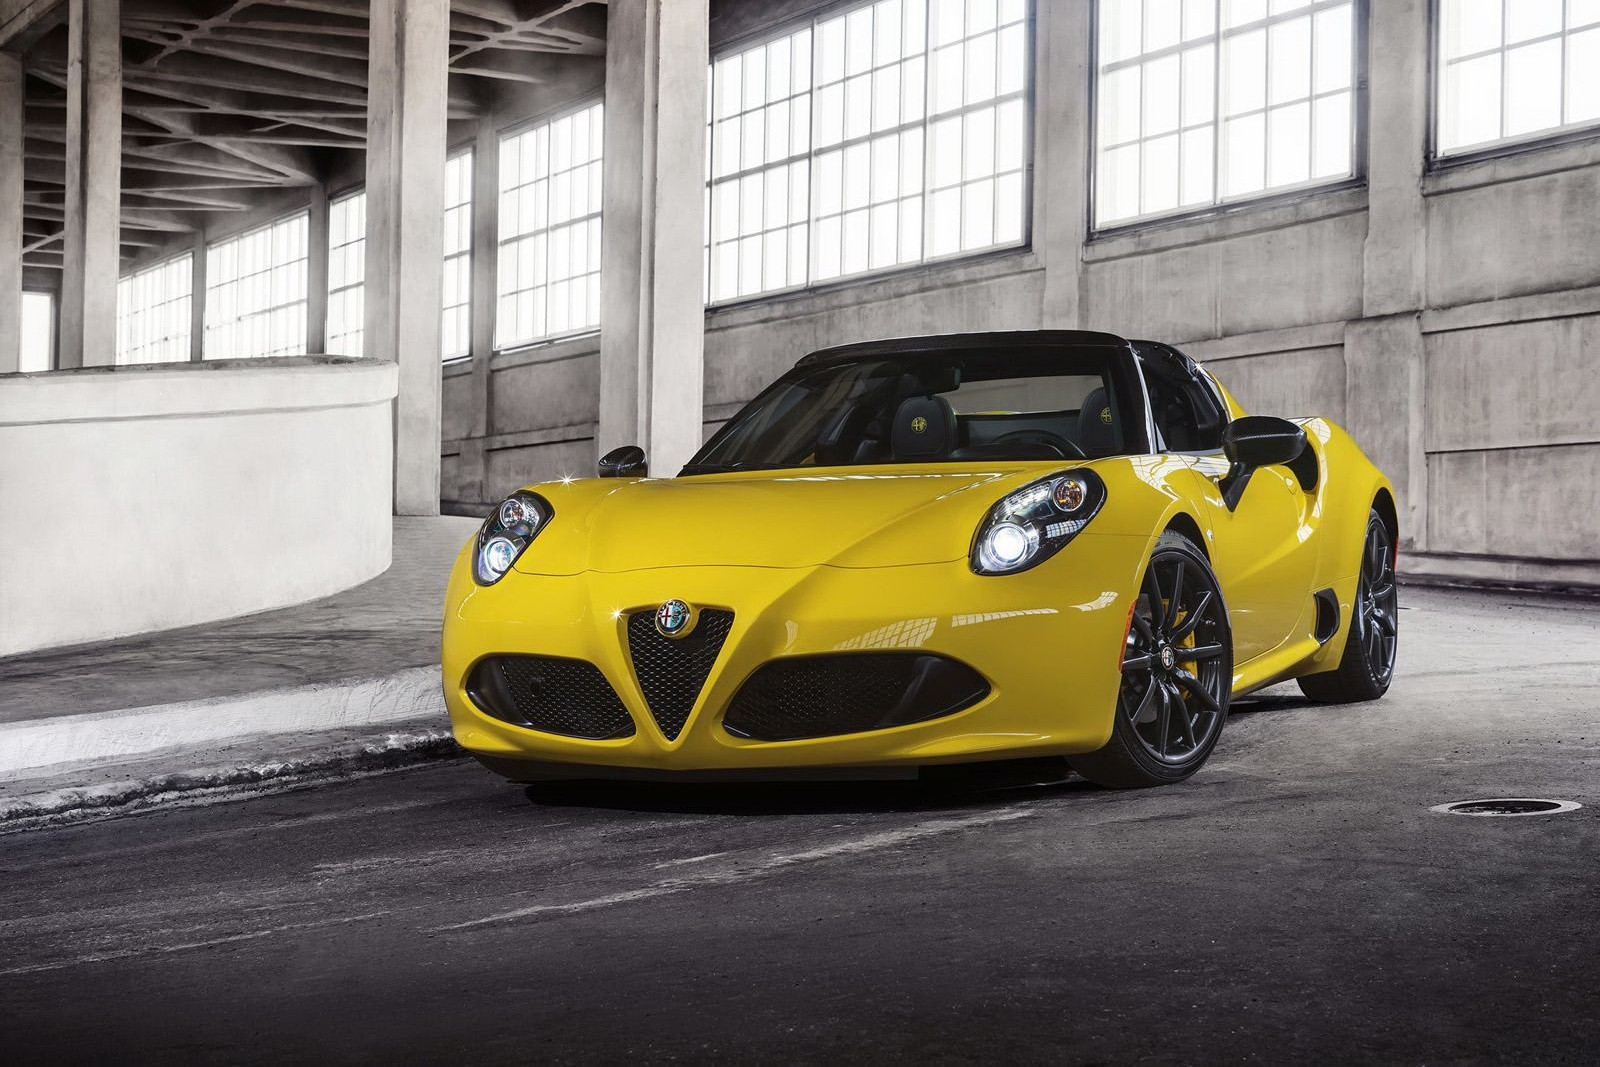 alfa romeo 4c spider makes online debut in giallo yellow autoevolution. Black Bedroom Furniture Sets. Home Design Ideas